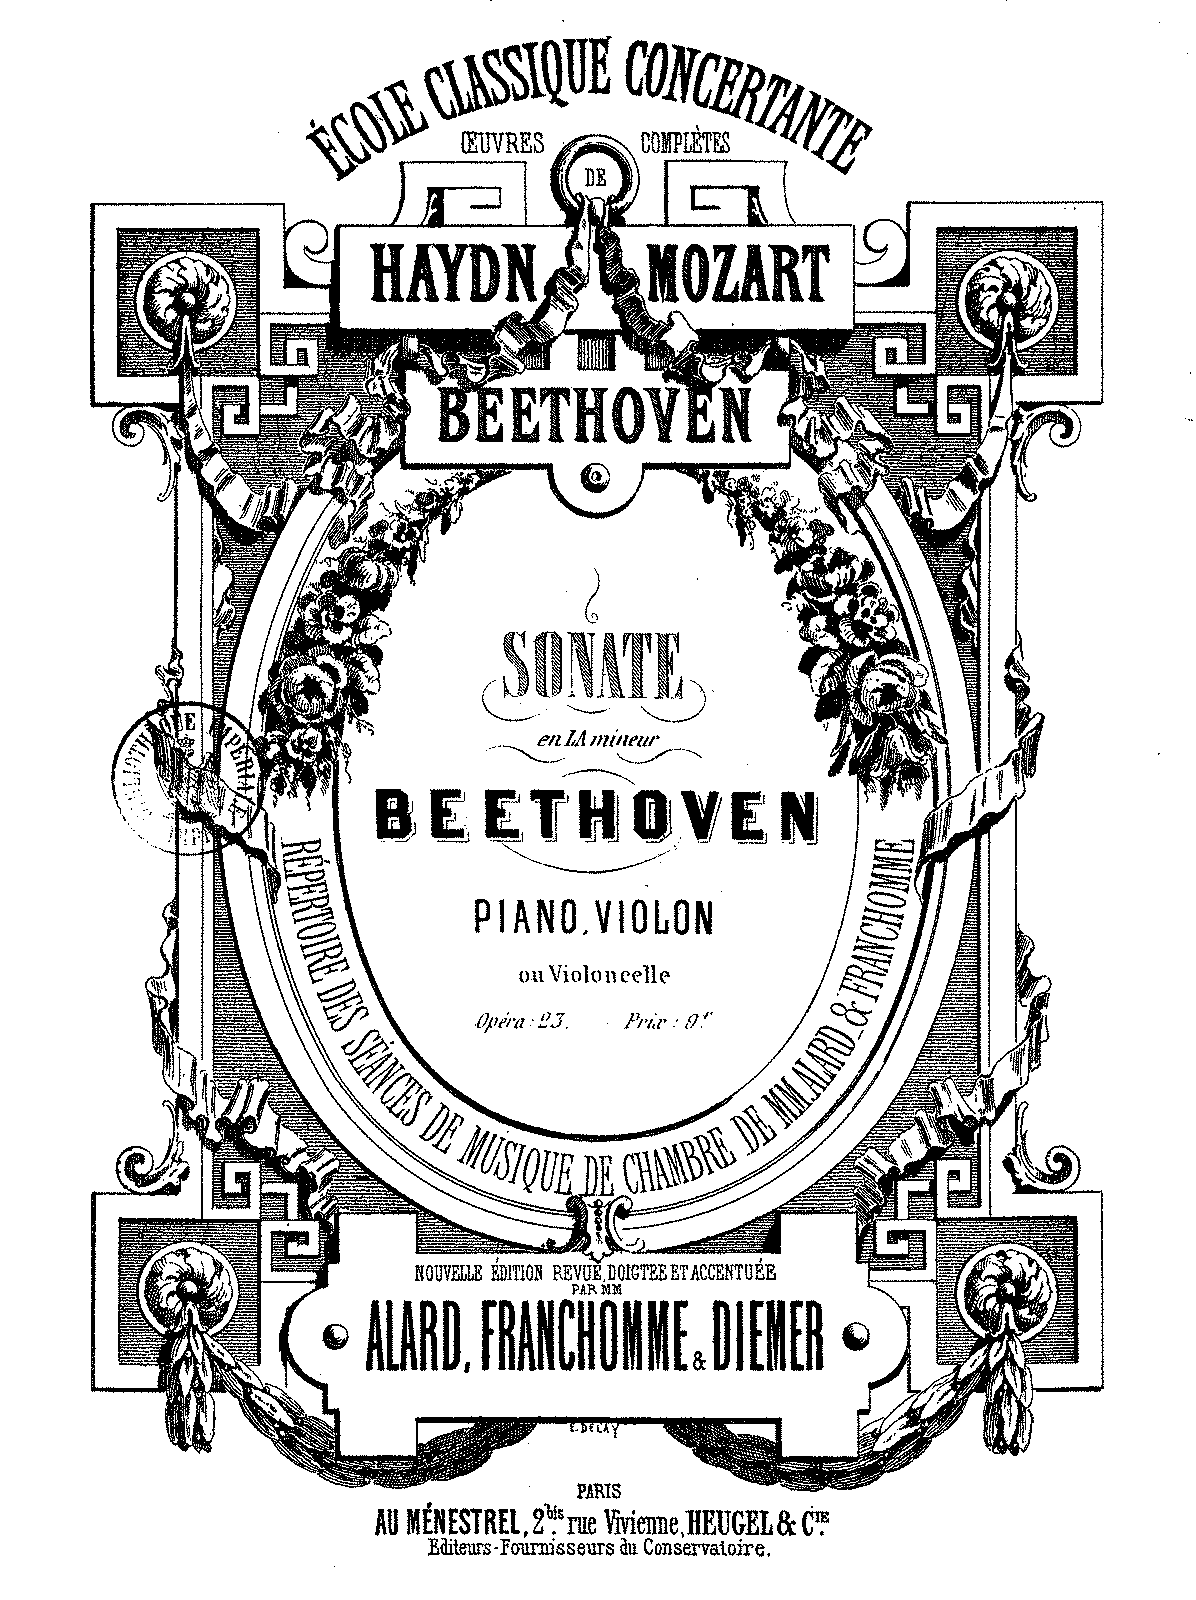 PMLP09077-Beethoven - Sonata No4 Op23 in Am (Alard Franchomme Diemer) for Cello and Piano PNO.pdf